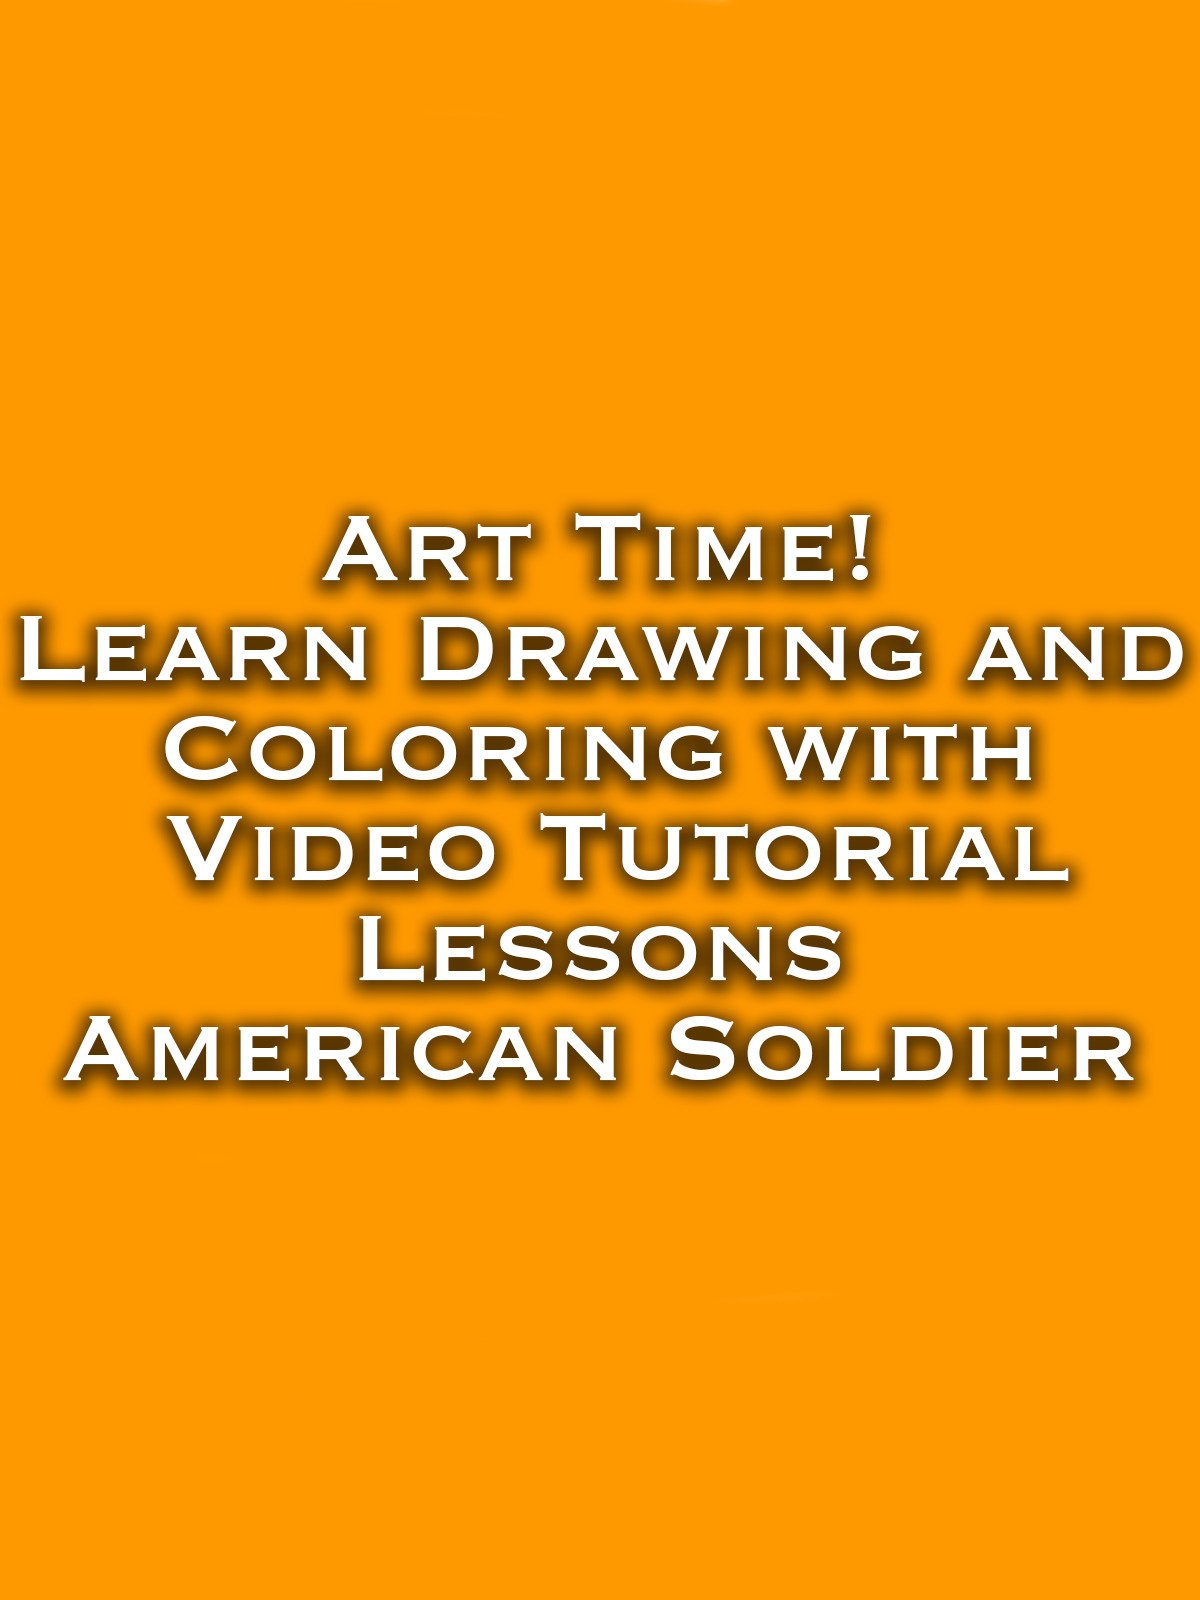 Art Time! Learn Drawing and Coloring with Video Tutorial Lessons American Soldier